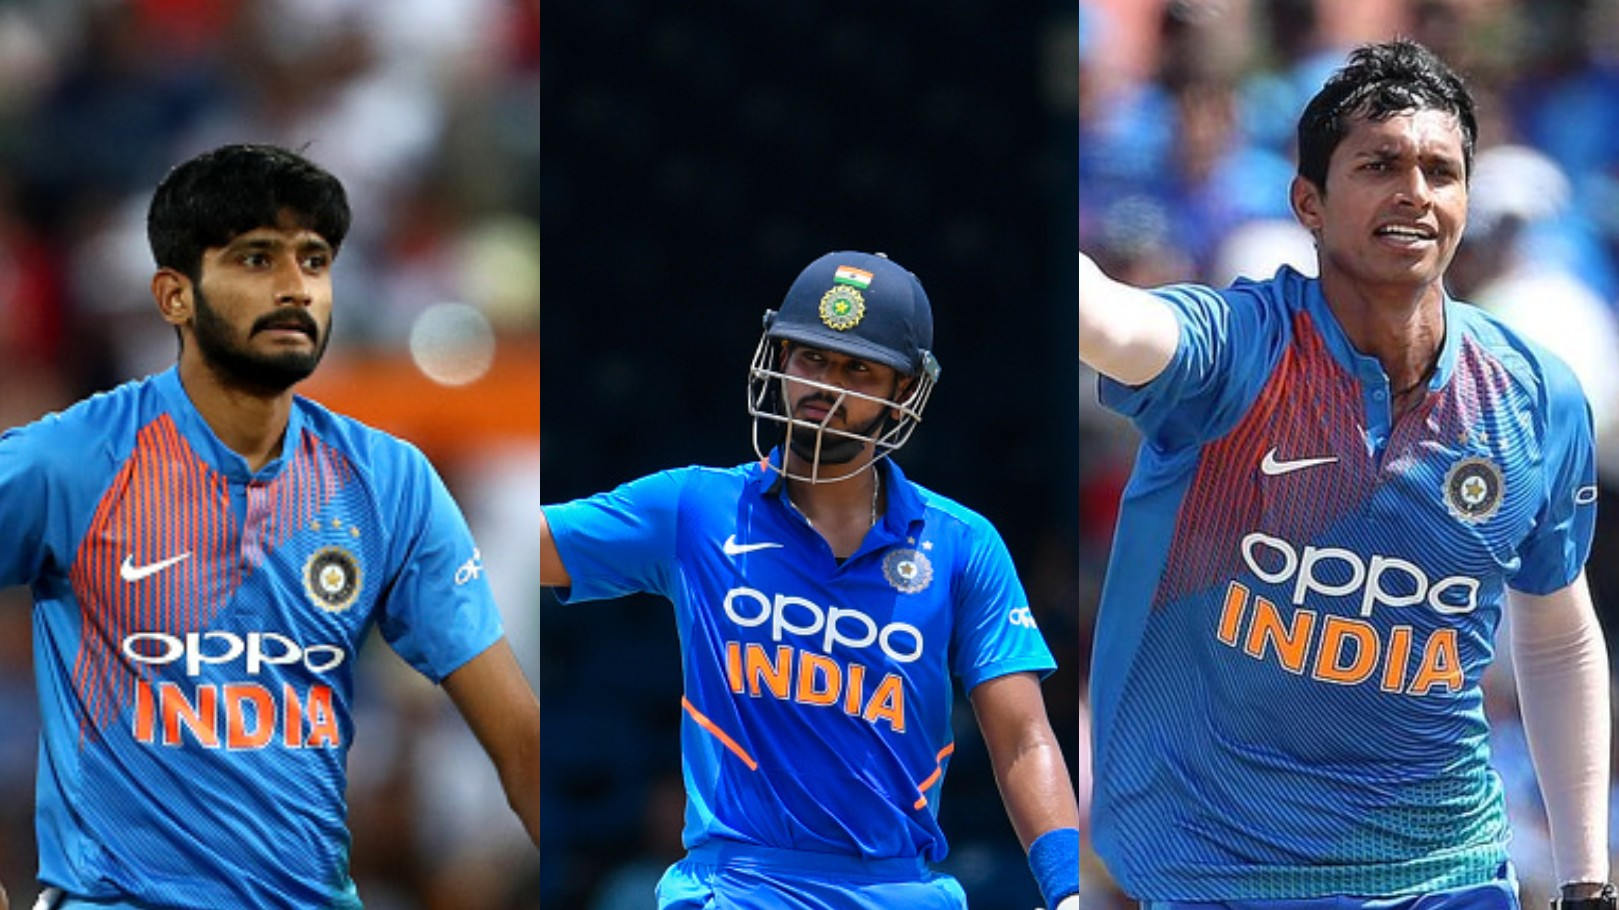 IND v SA 2019: 5 Indian players who would look to establish themselves in the SA T20I series